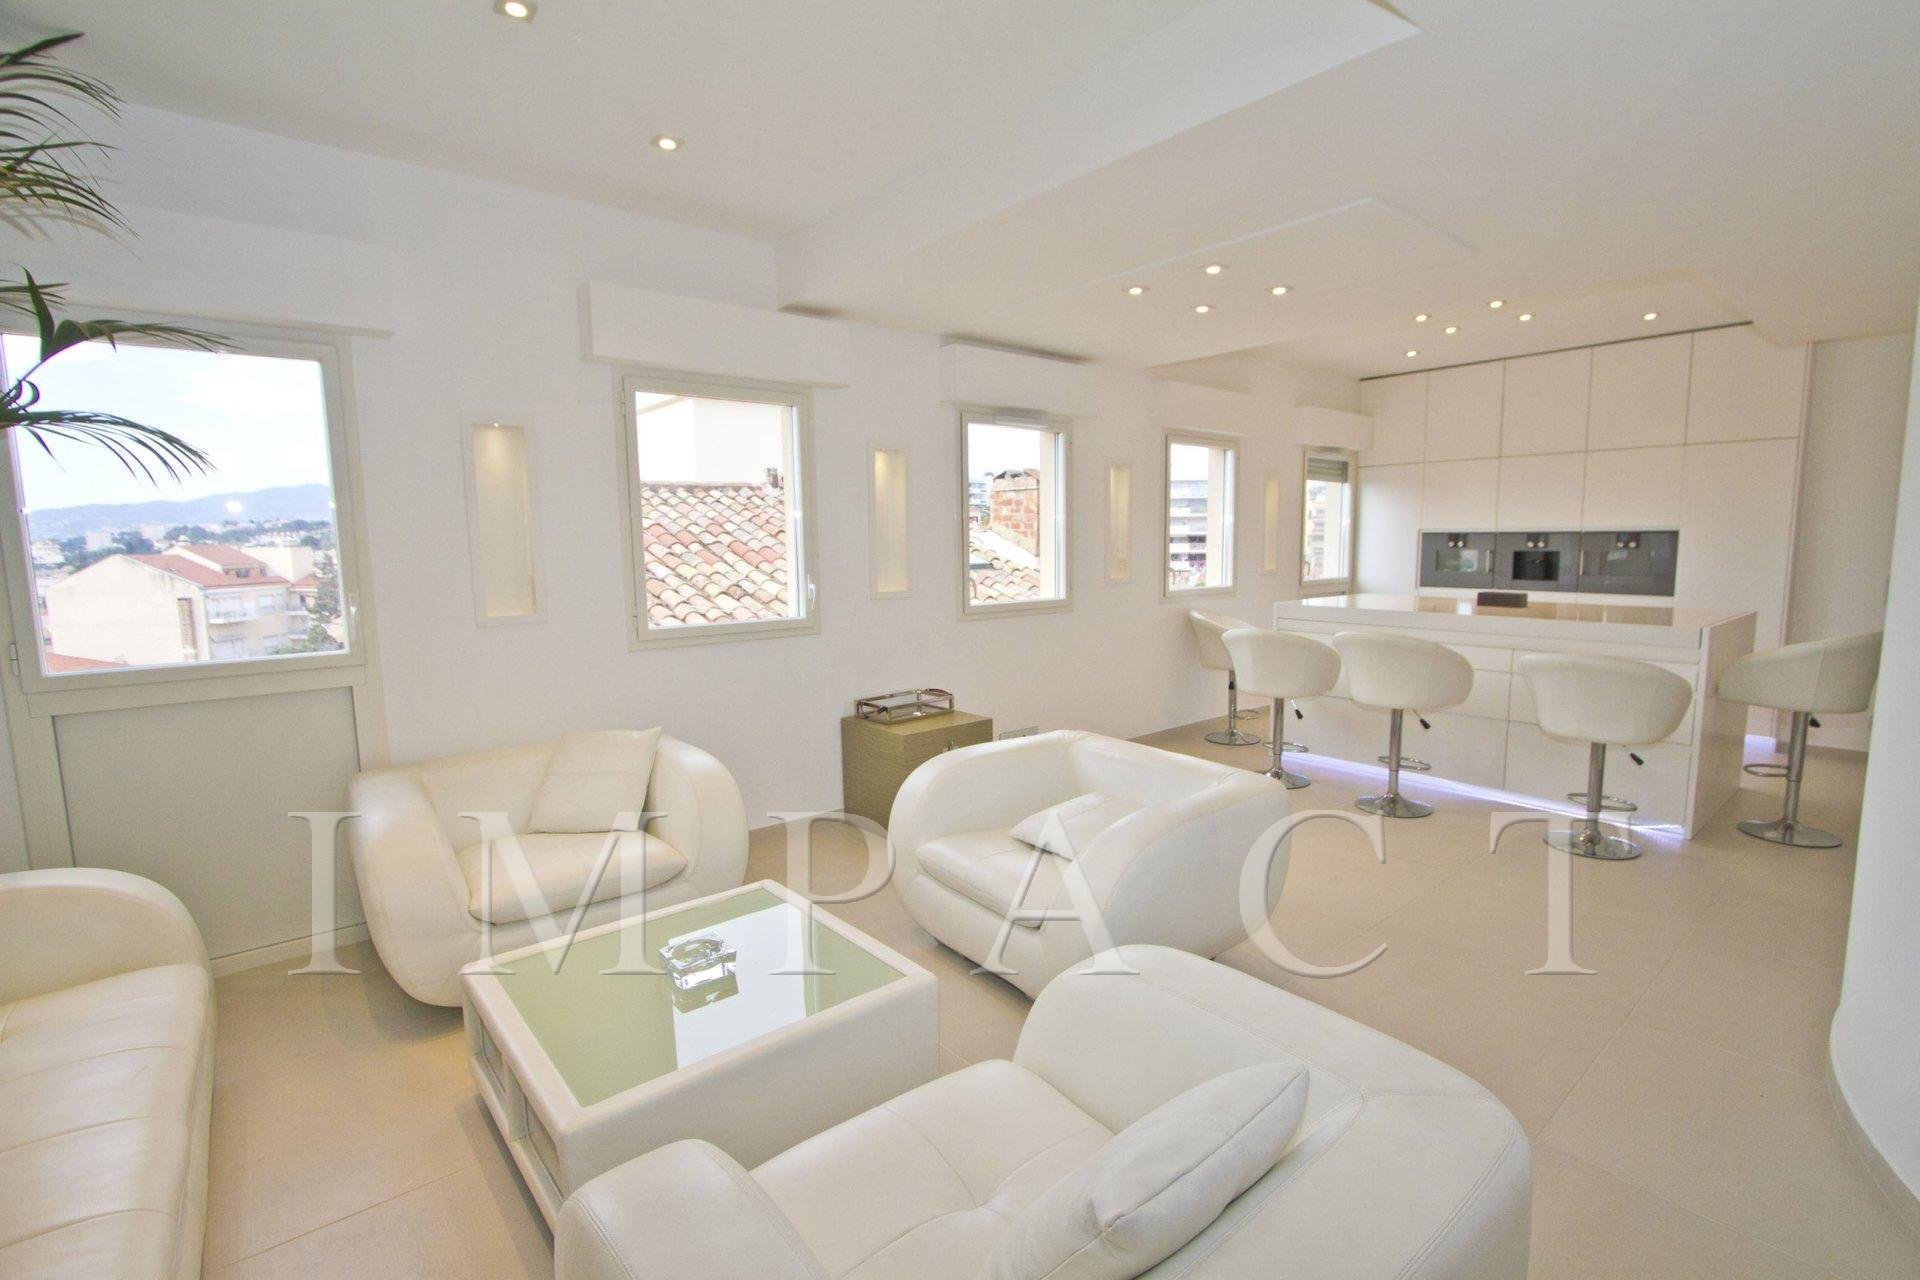 BEAUTIFULLY FULLY RENOVATED BUILDING FOR RENT, WALKING DISTANCE TO THE PALAIS DES FESTIVALS, CANNES